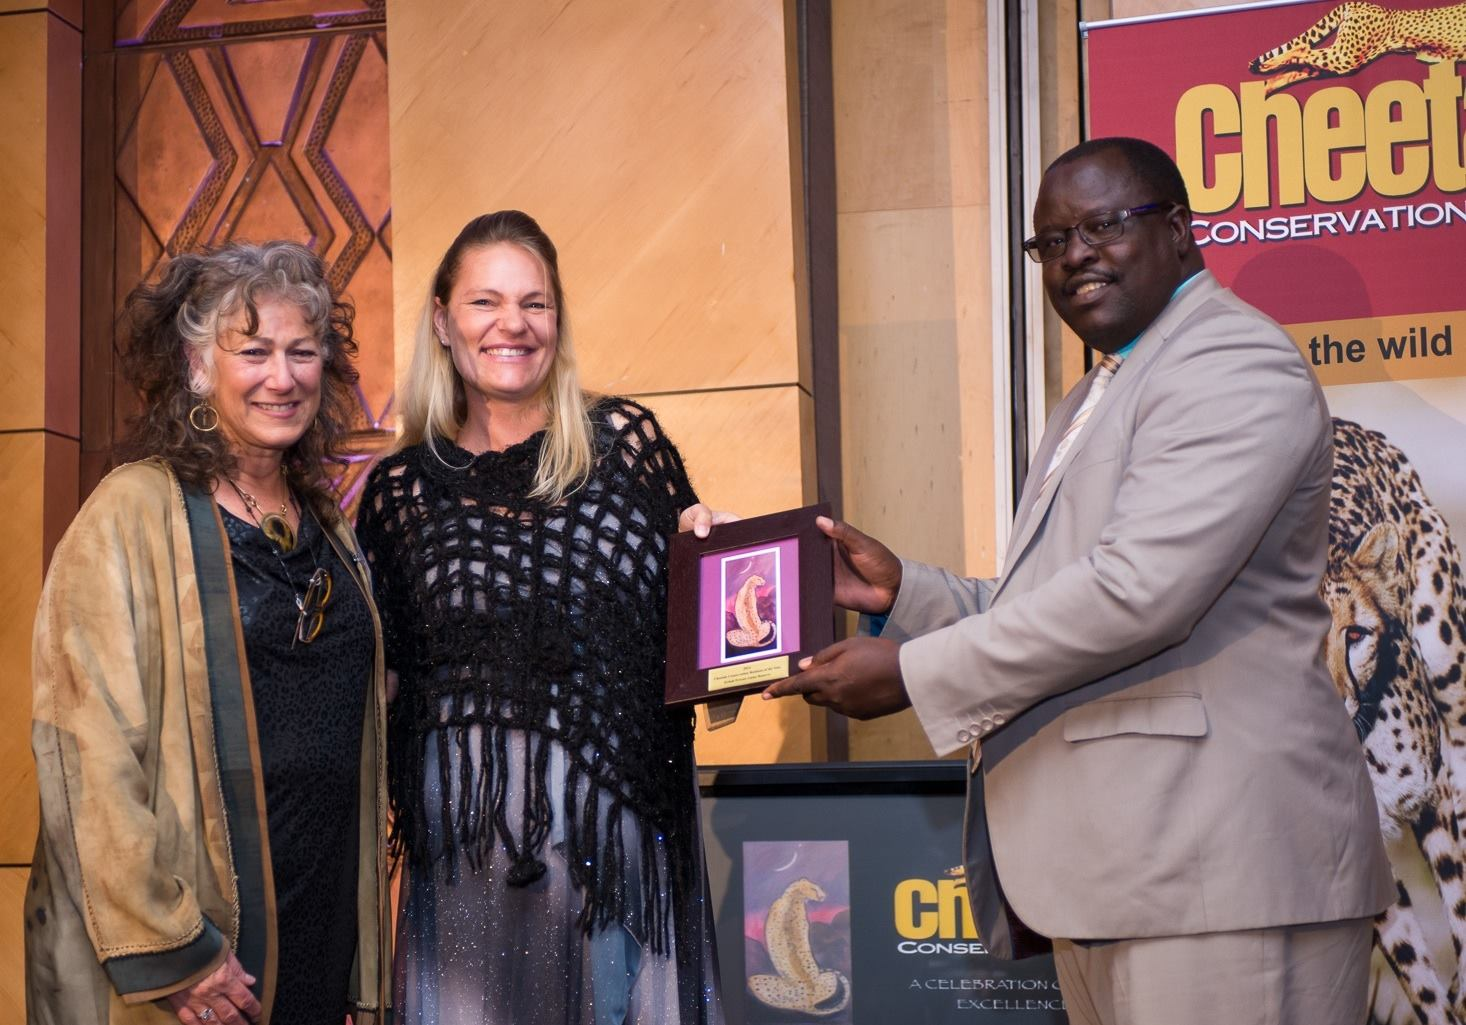 The Erindi Private Game Reserve, represented by Natasha Britz2014 Conservation Business of the Year. The award was presented by Dr. Laurie Marker, Founder and Executive Director of the Cheetah Conservation Fund, and the Honorable Minister Uahekua Herunga, Minister of Environment and Tourism. © Cheetah Conservation Fund.